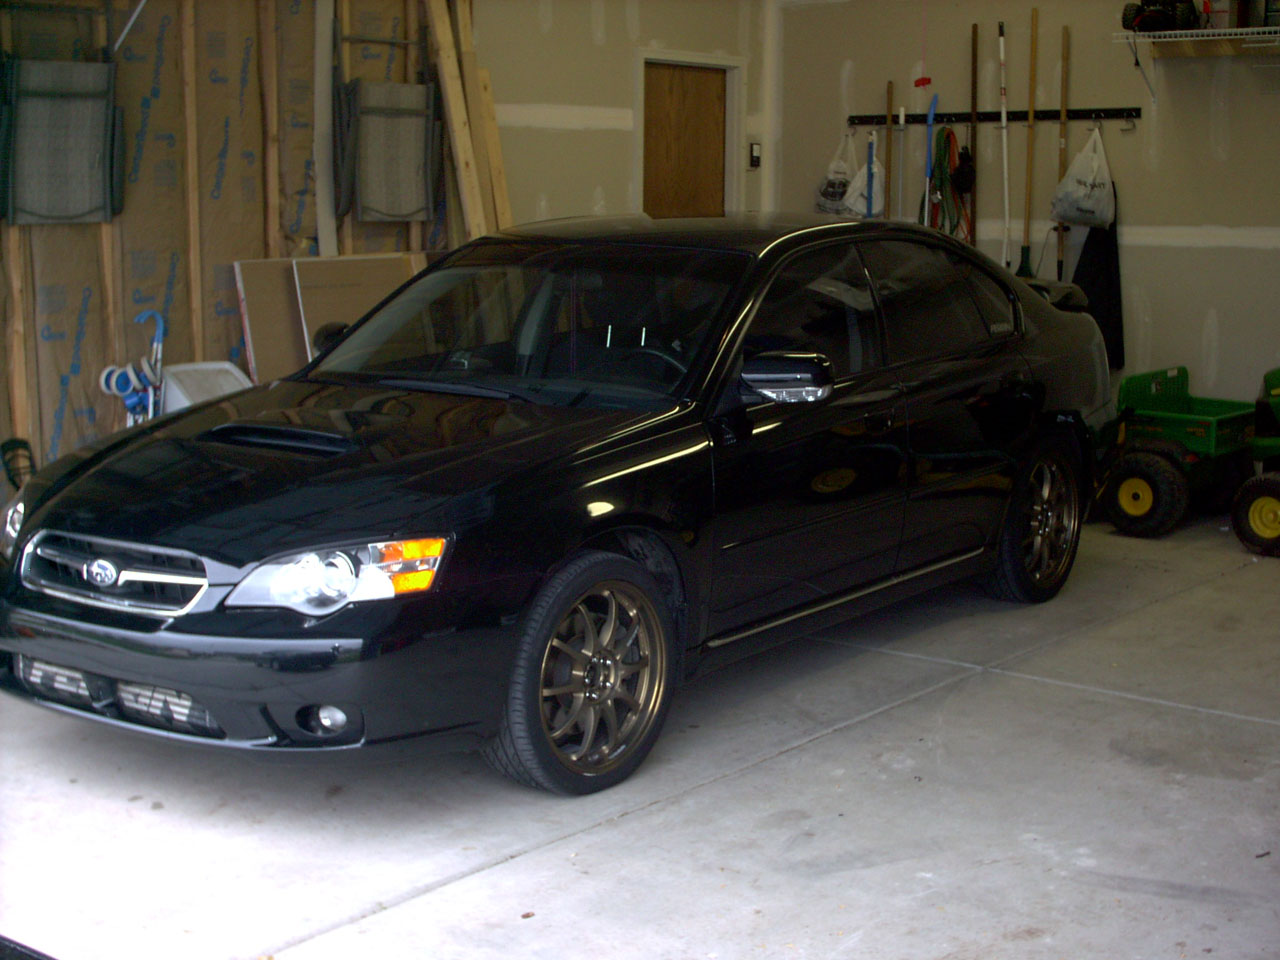 2005 Subaru Legacy gt Pictures, Mods, Upgrades, Wallpaper - DragTimes ...